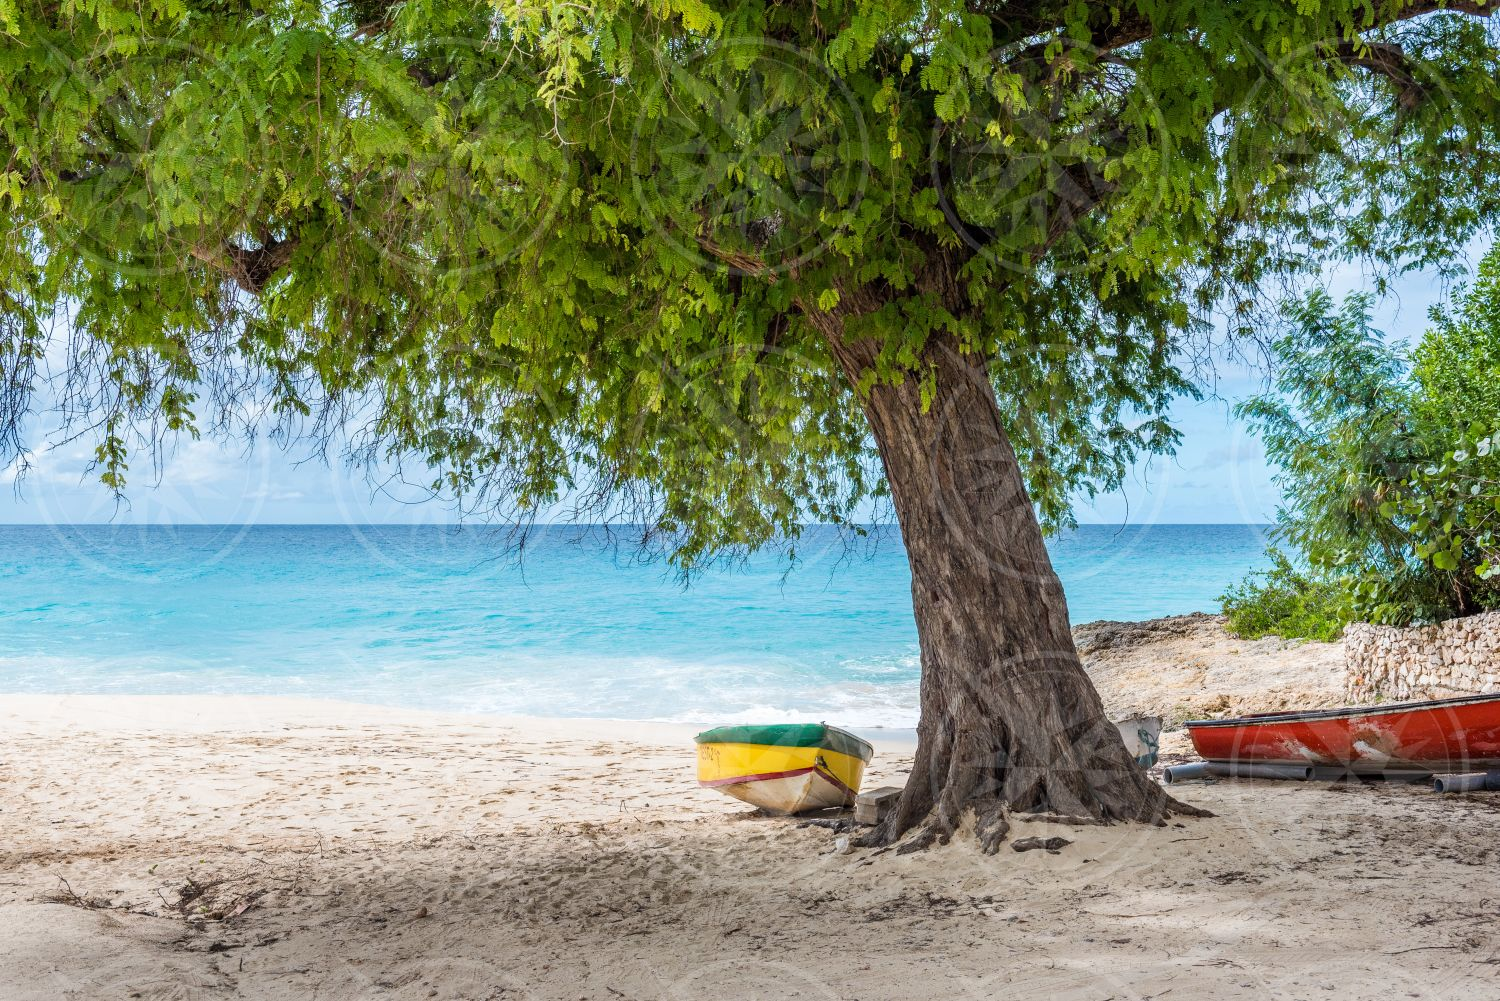 Boat under a tamarind tree on Meads Bay